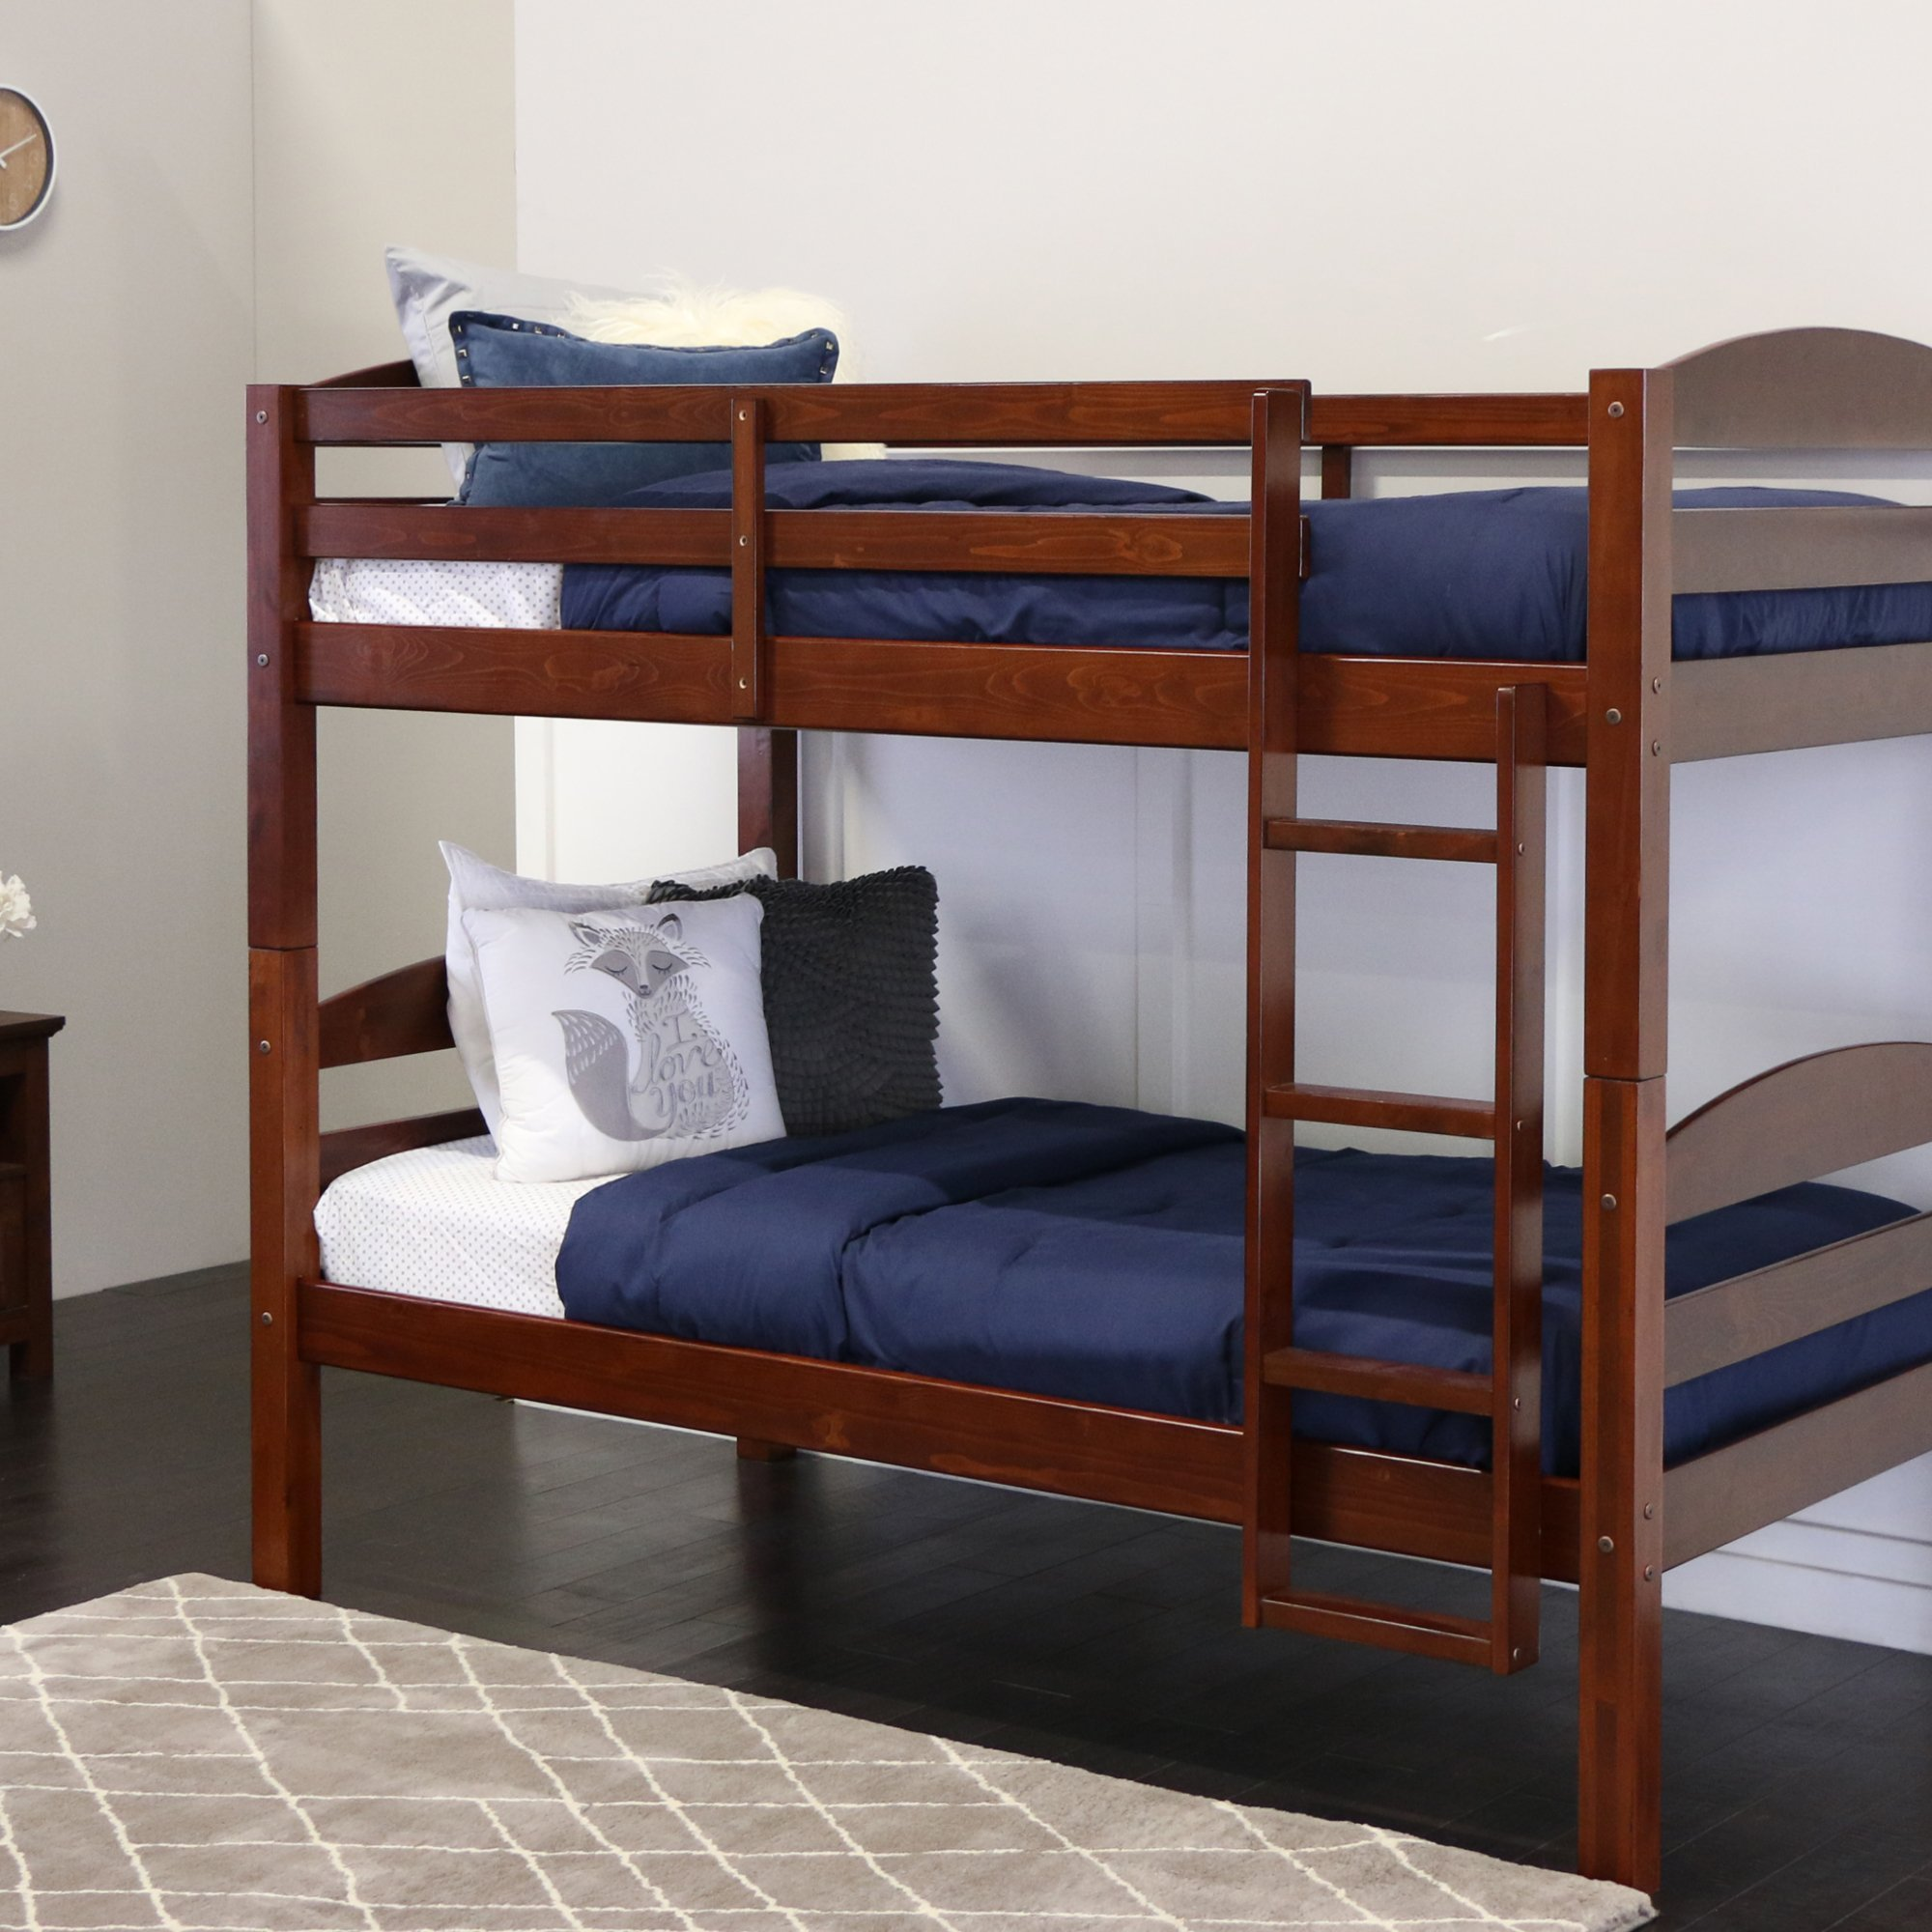 Best Heavy Duty Bunk Beds For Adults Amazon Com